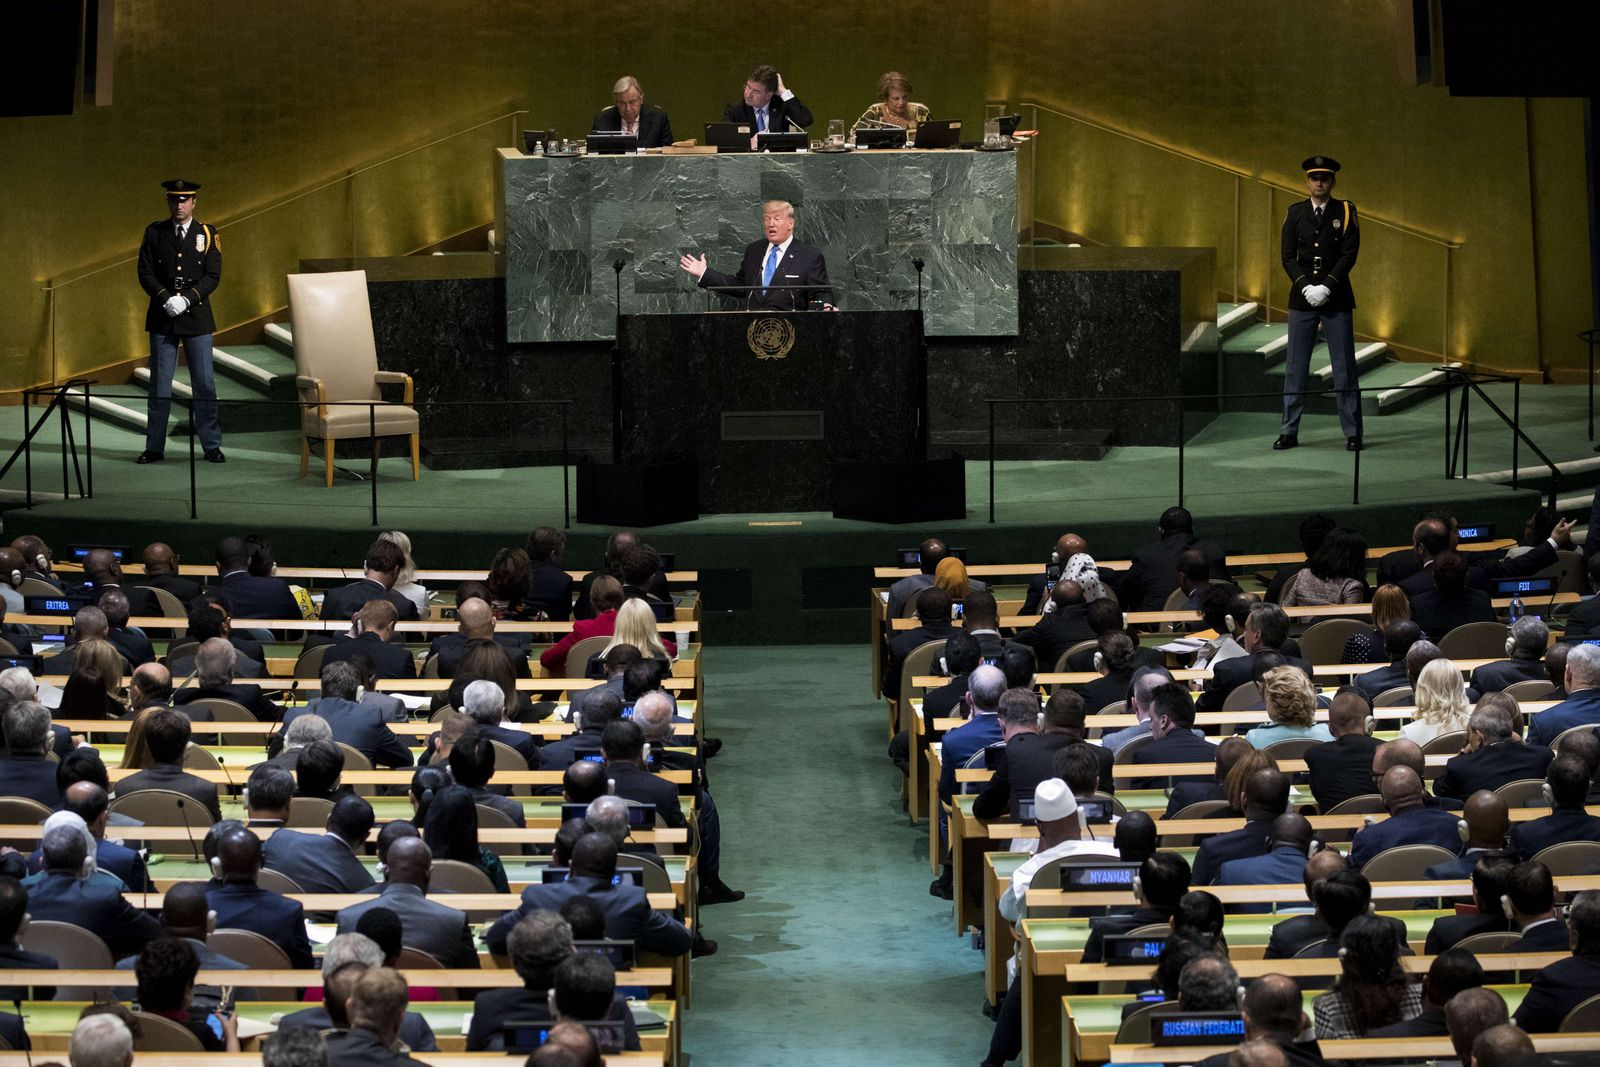 US-WORLD-LEADERS-ADDRESS-ANNUAL-UNITED-NATIONS-GENERAL-ASSEMBLY